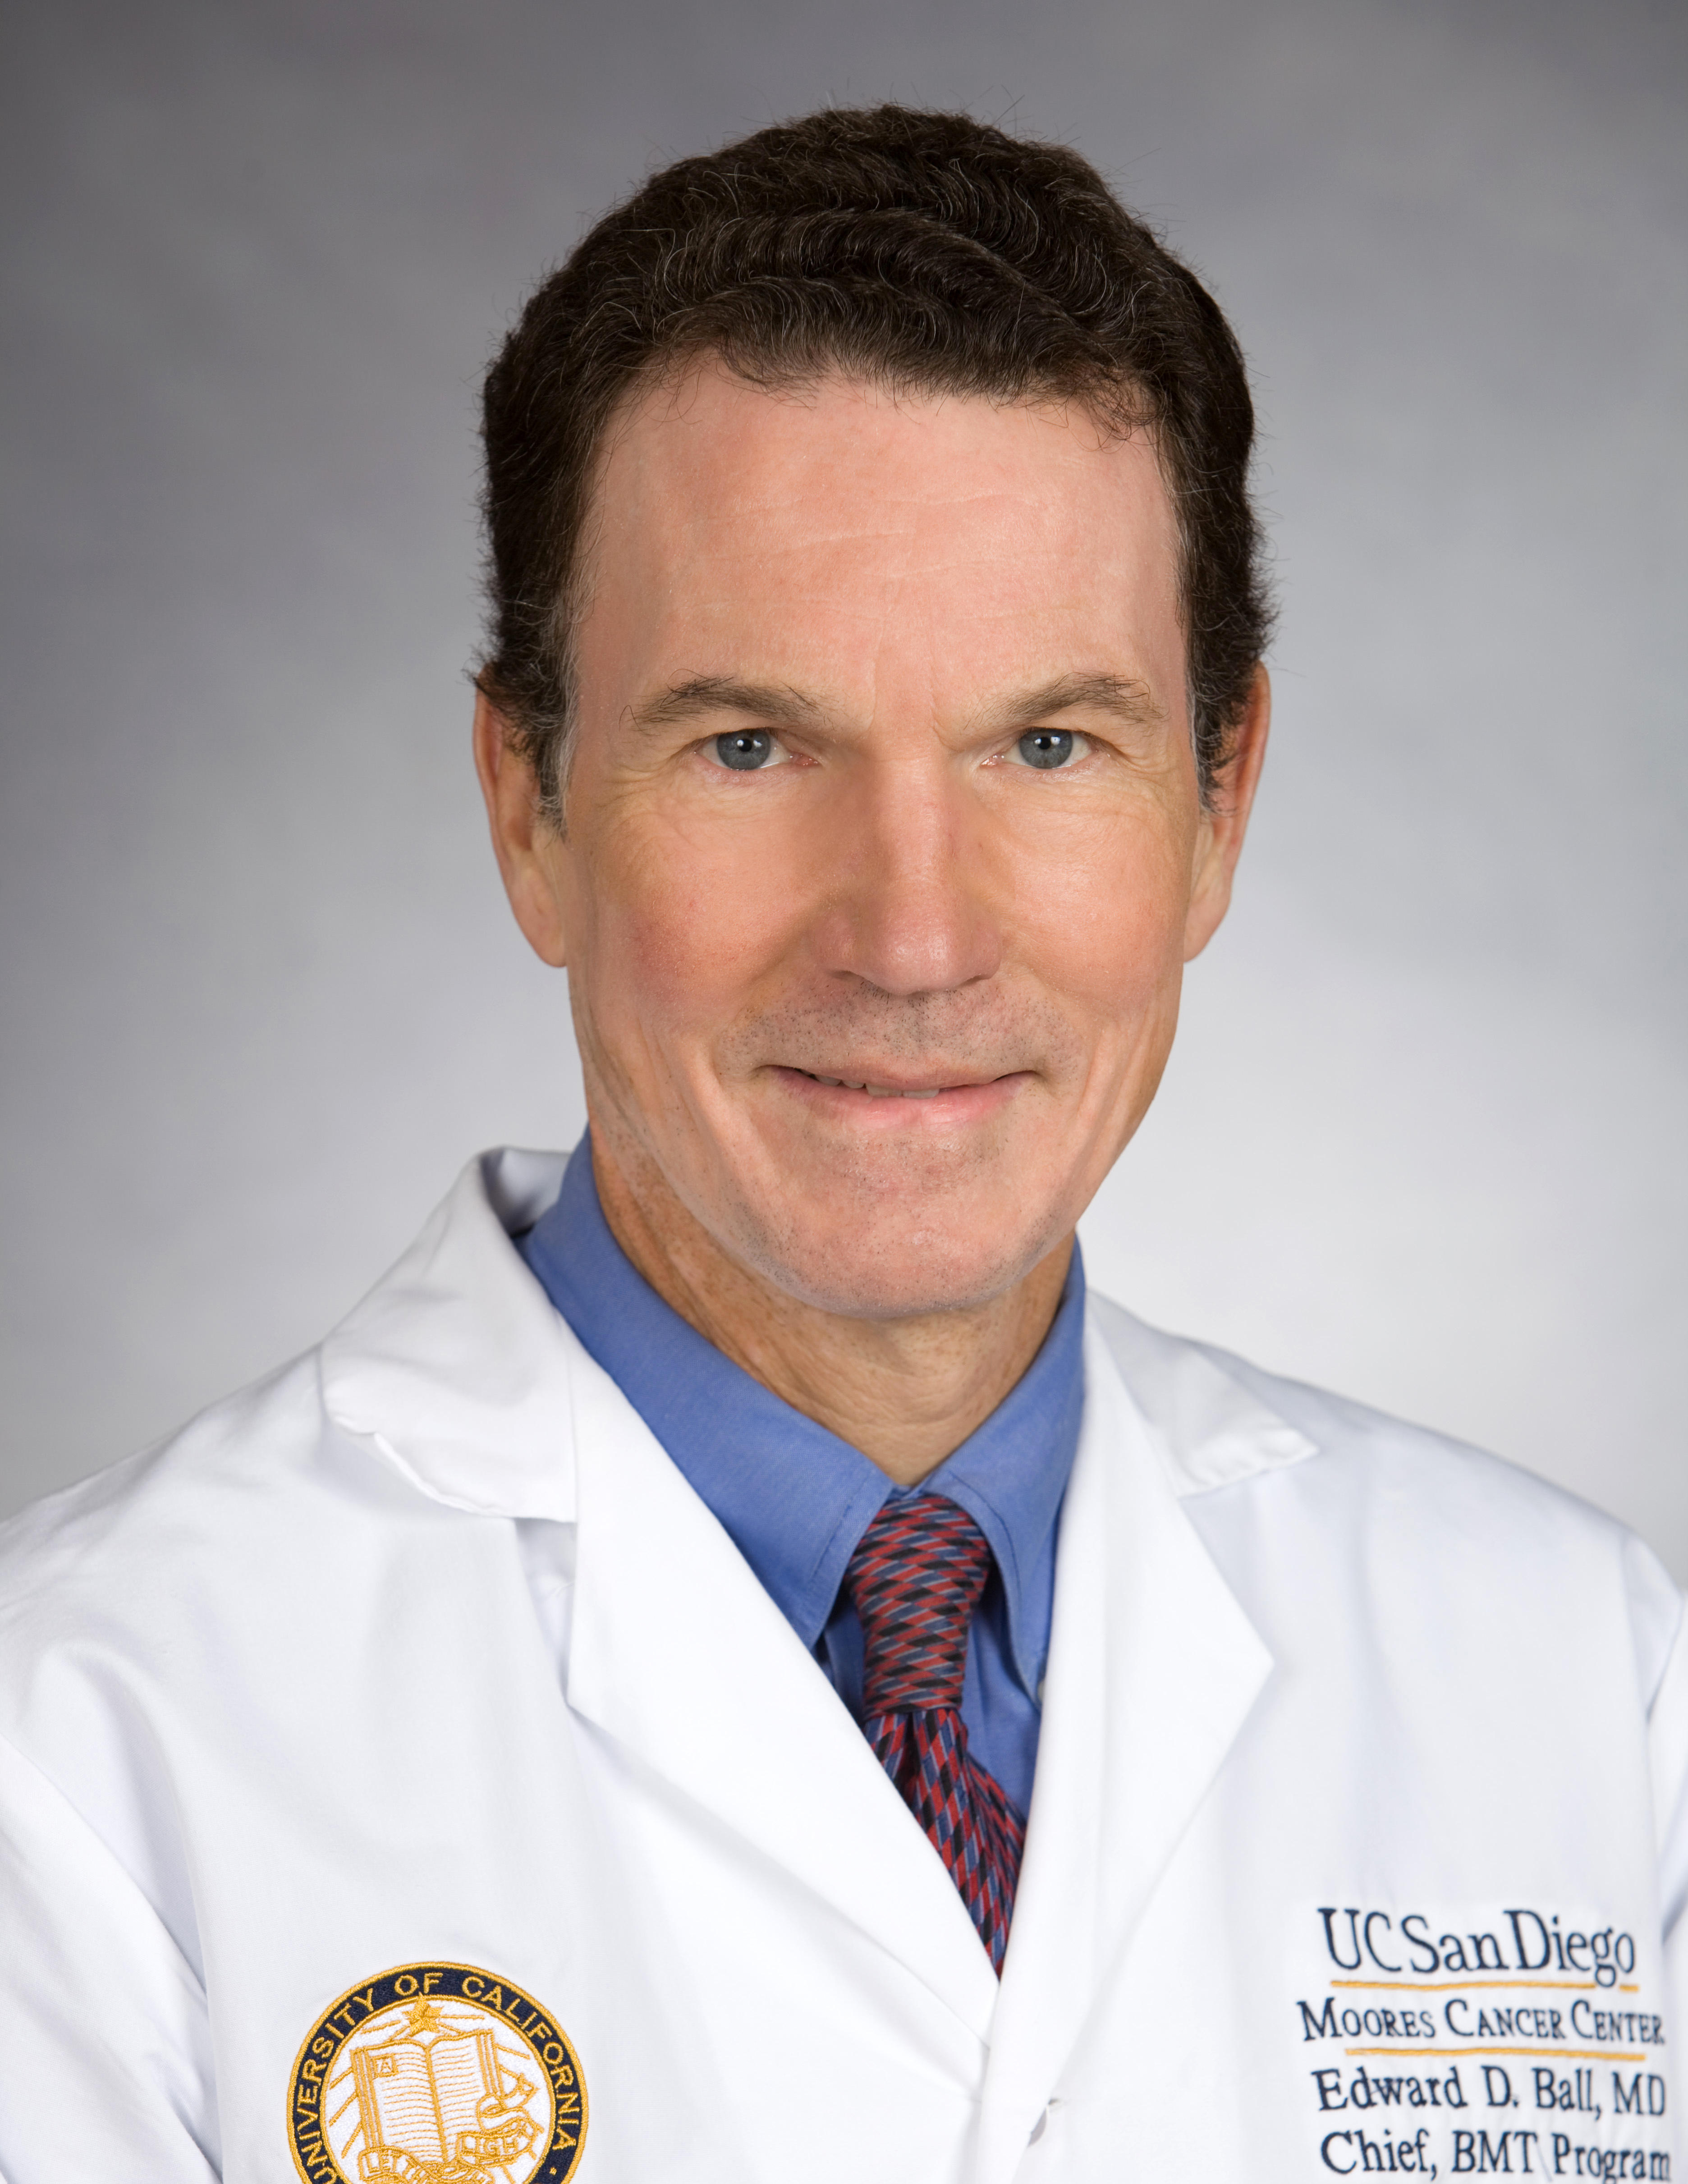 Edward Ball, MD Medical Oncology